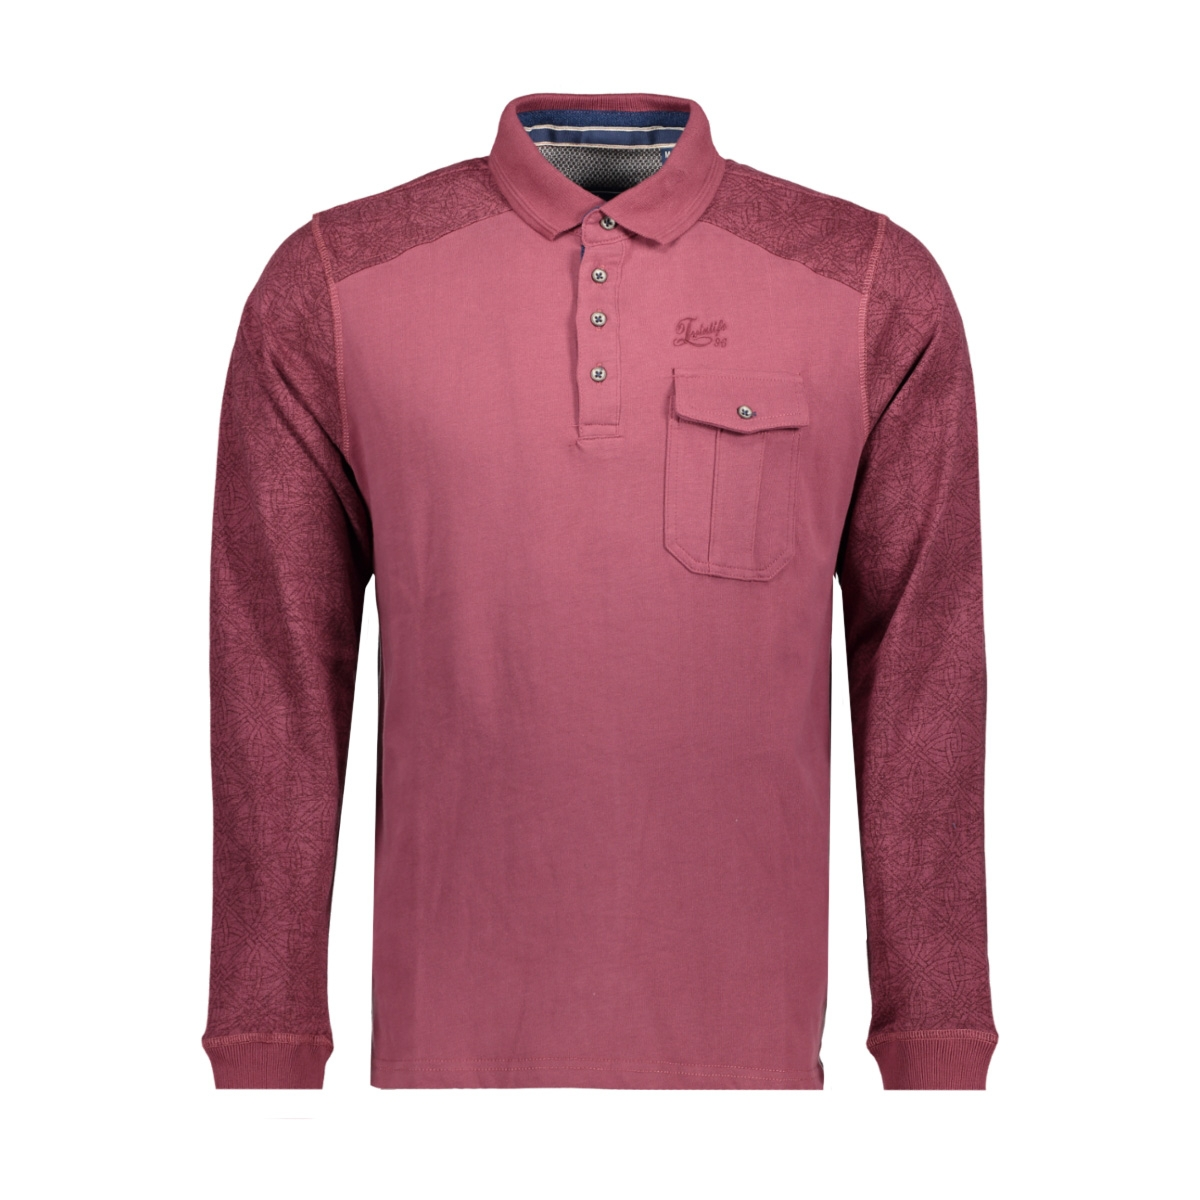 mru751706 twinlife polo 4751 plum